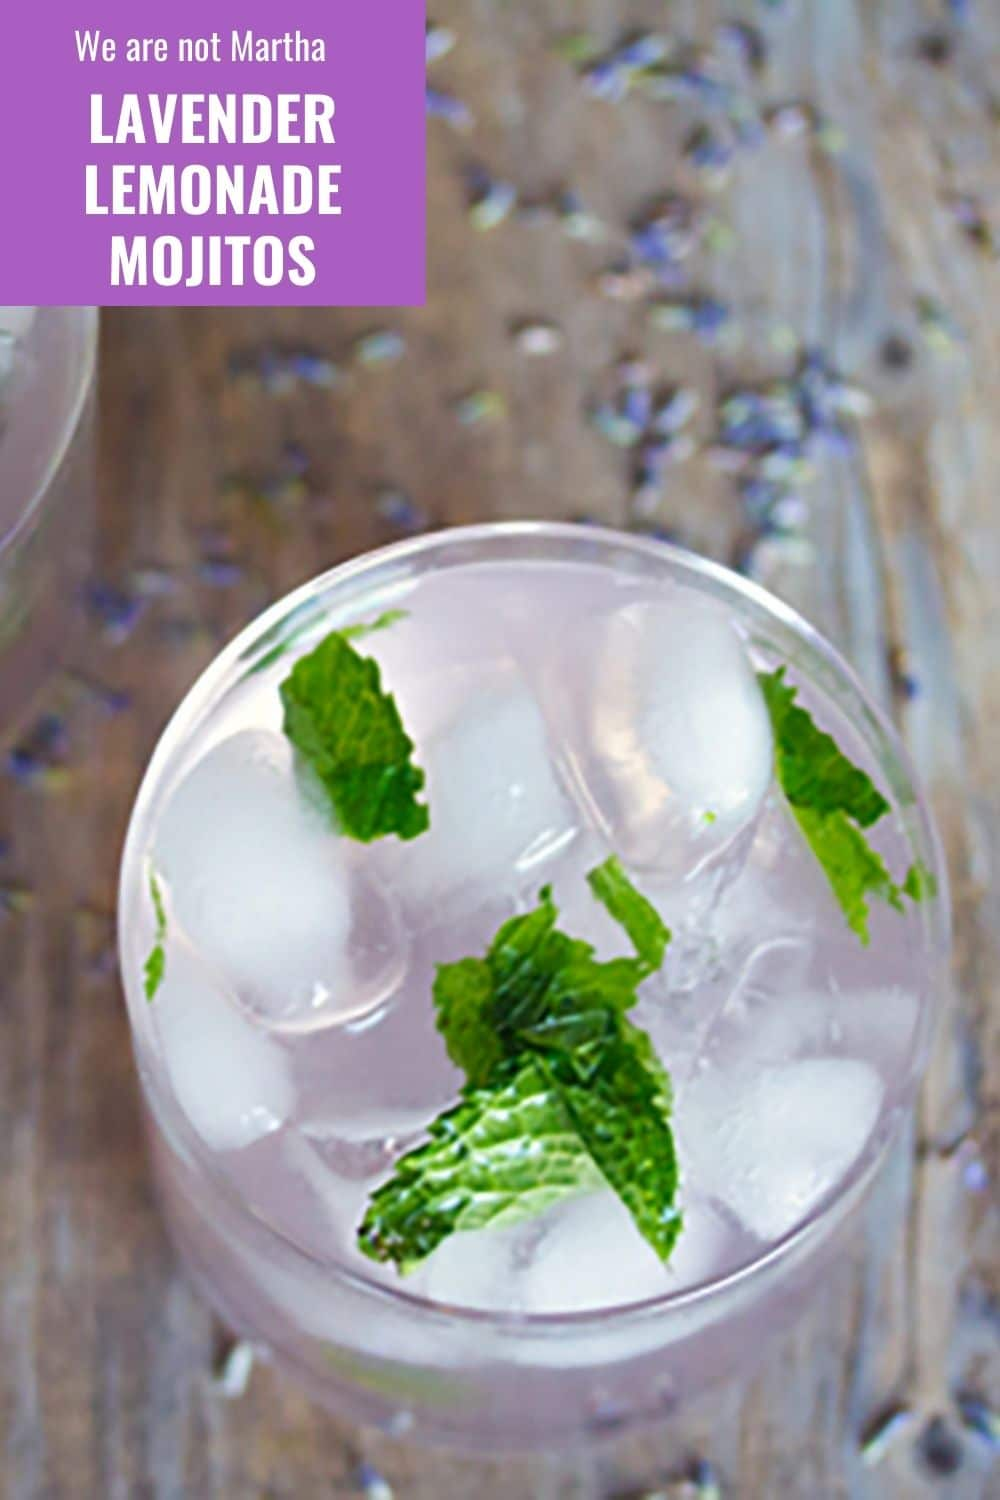 Lavender Lemonade Mojitos